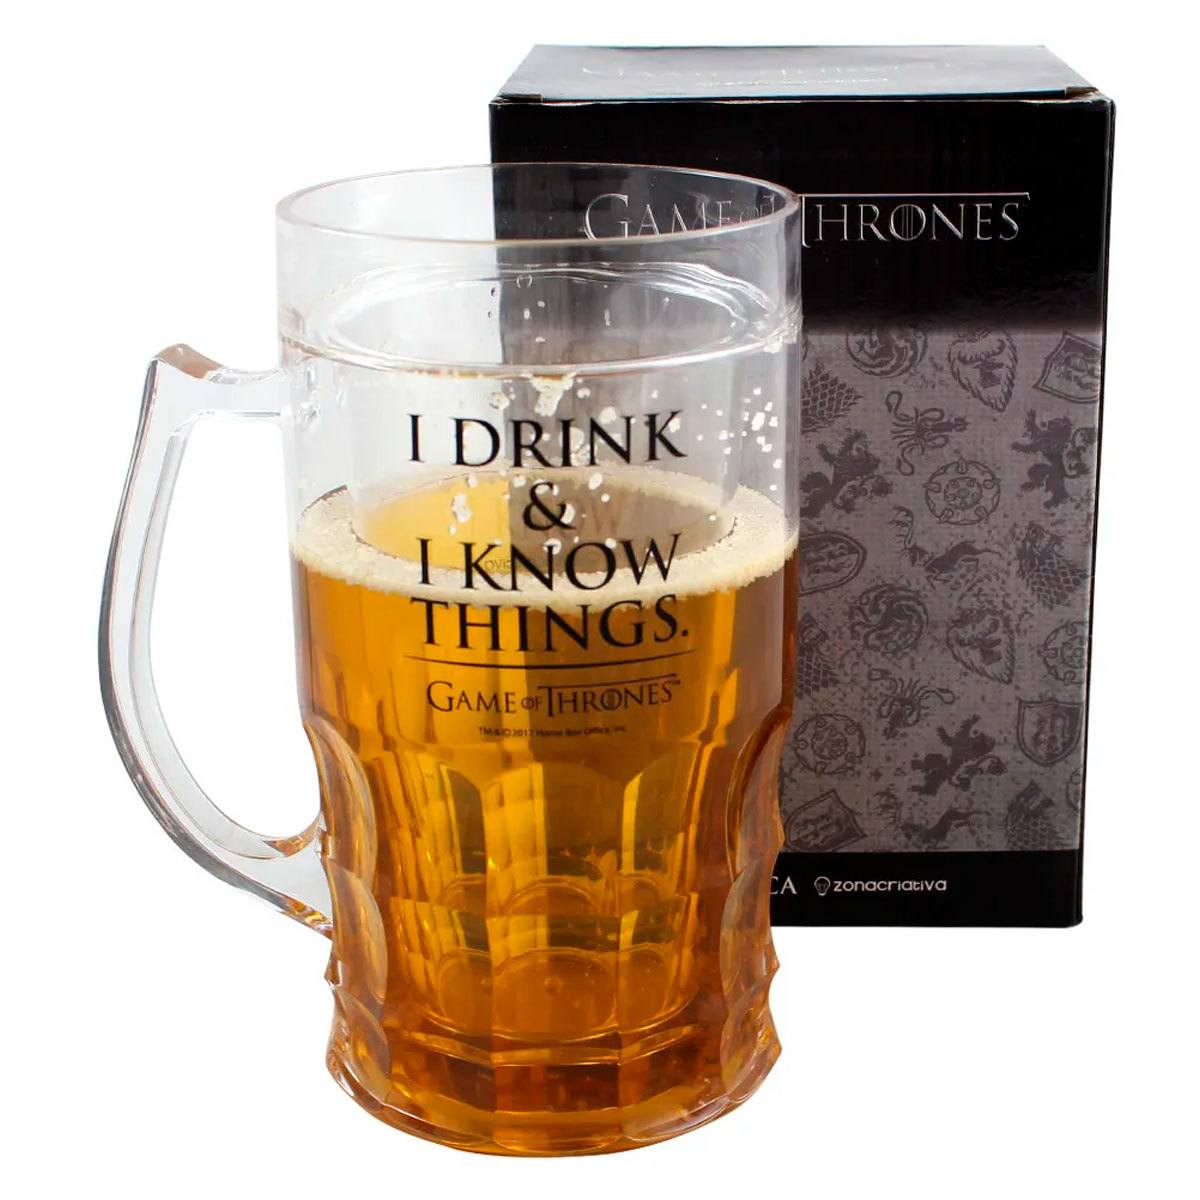 Caneca de Chopp Térmica Game Of Thrones 500 ml Presentes Super